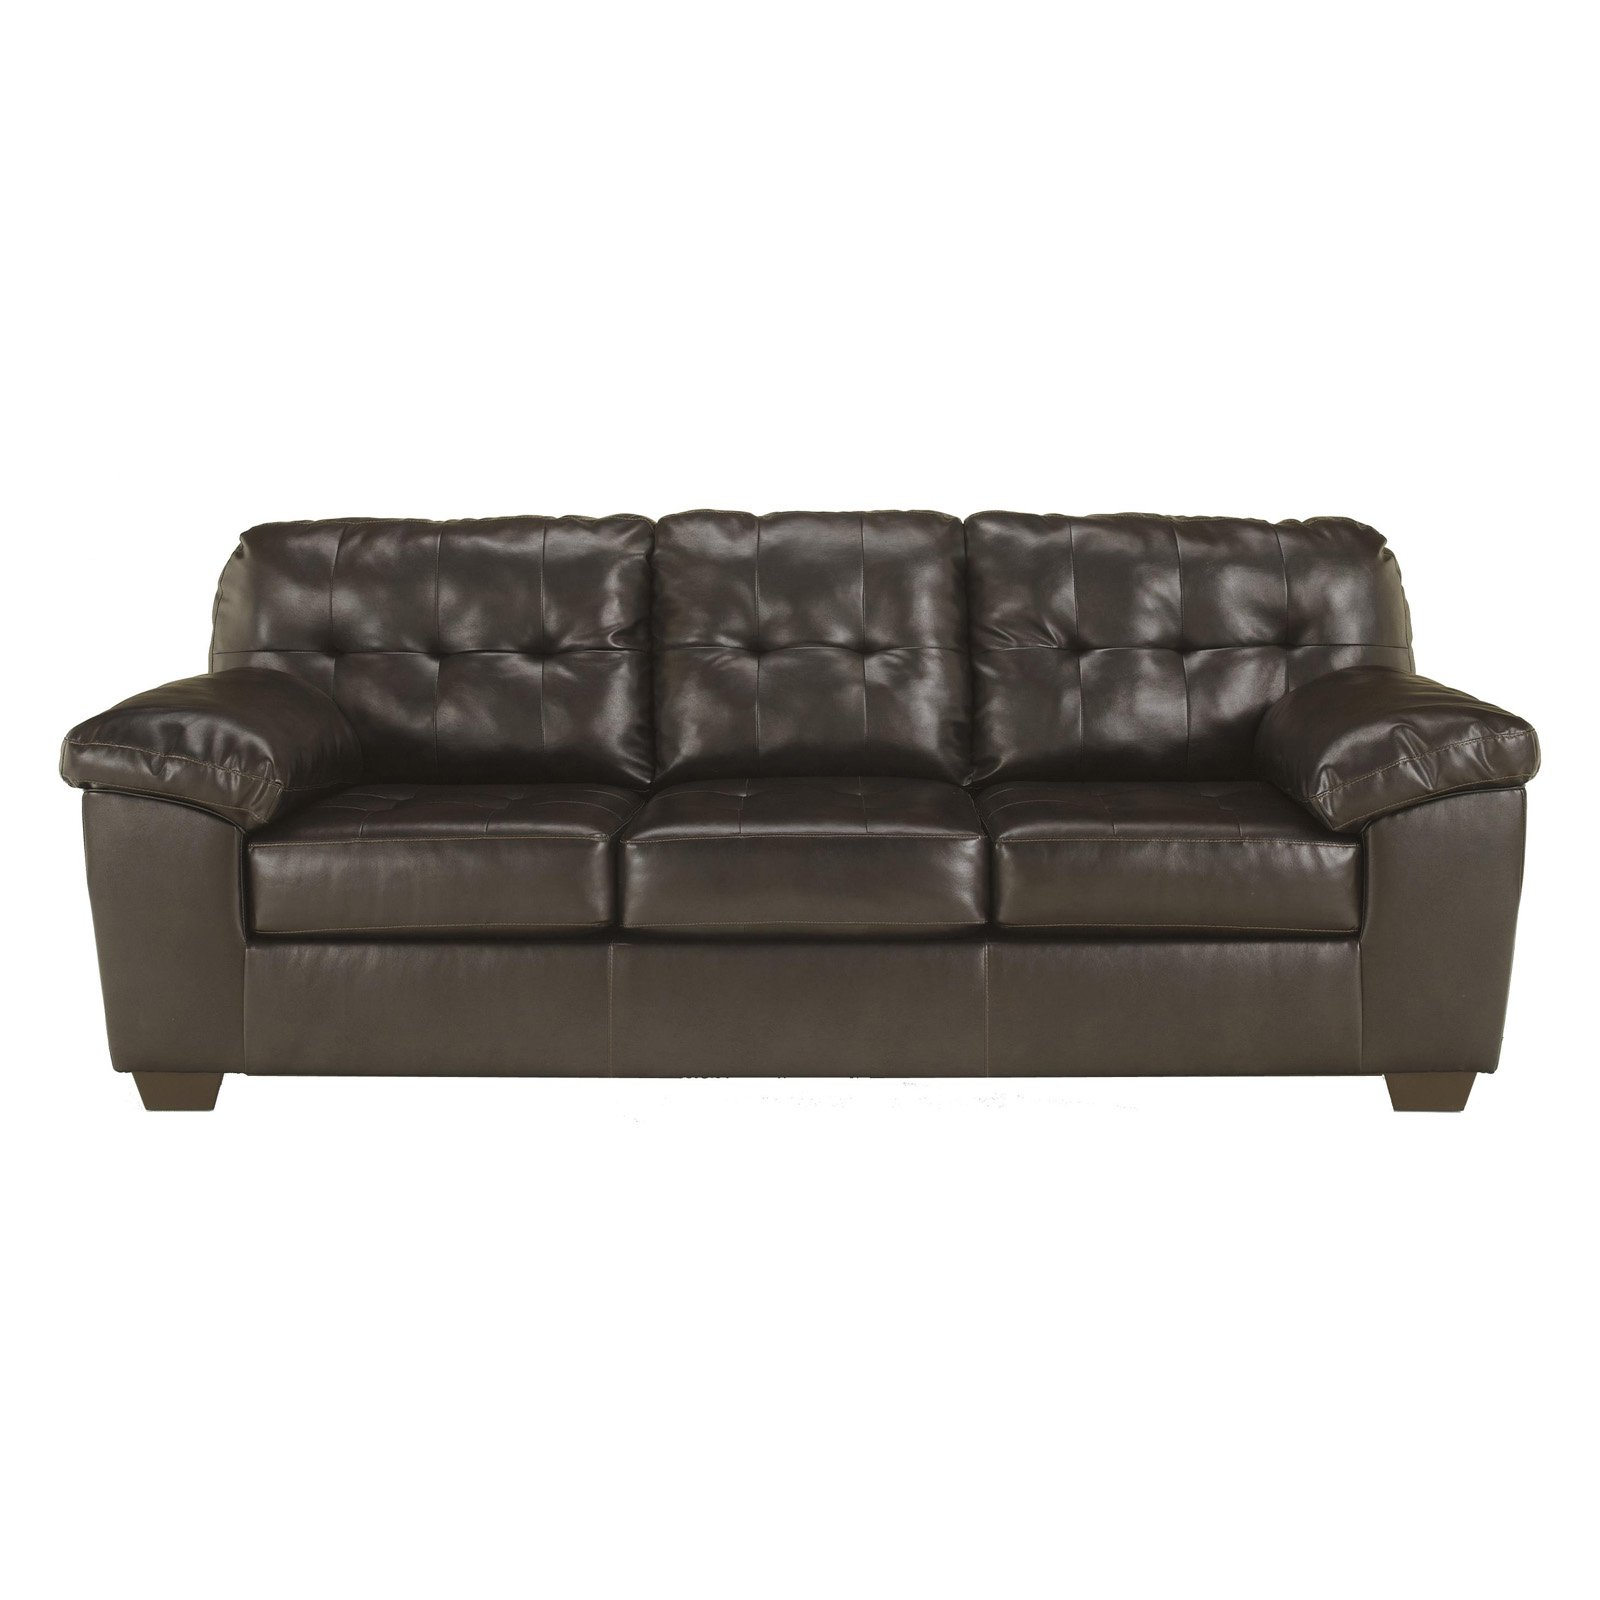 Sofa Queen Signature Design By Ashley Alliston Durablend Queen Sofa Sleeper